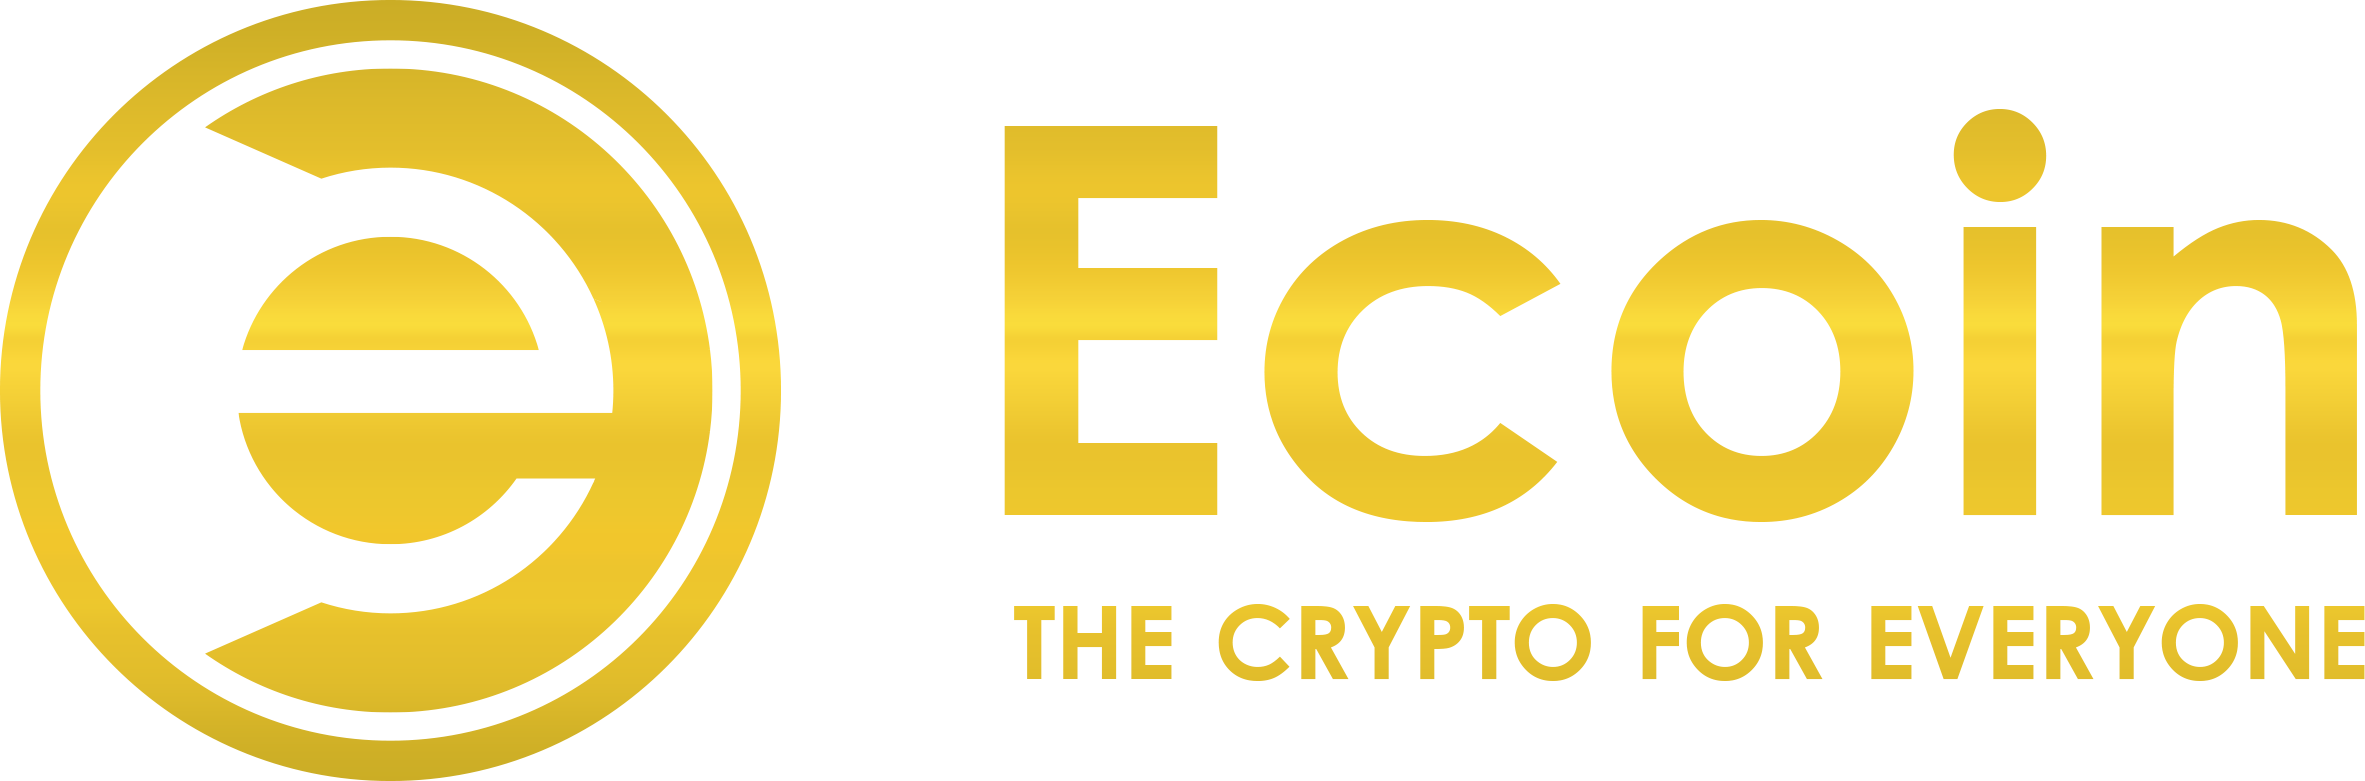 emailCoin